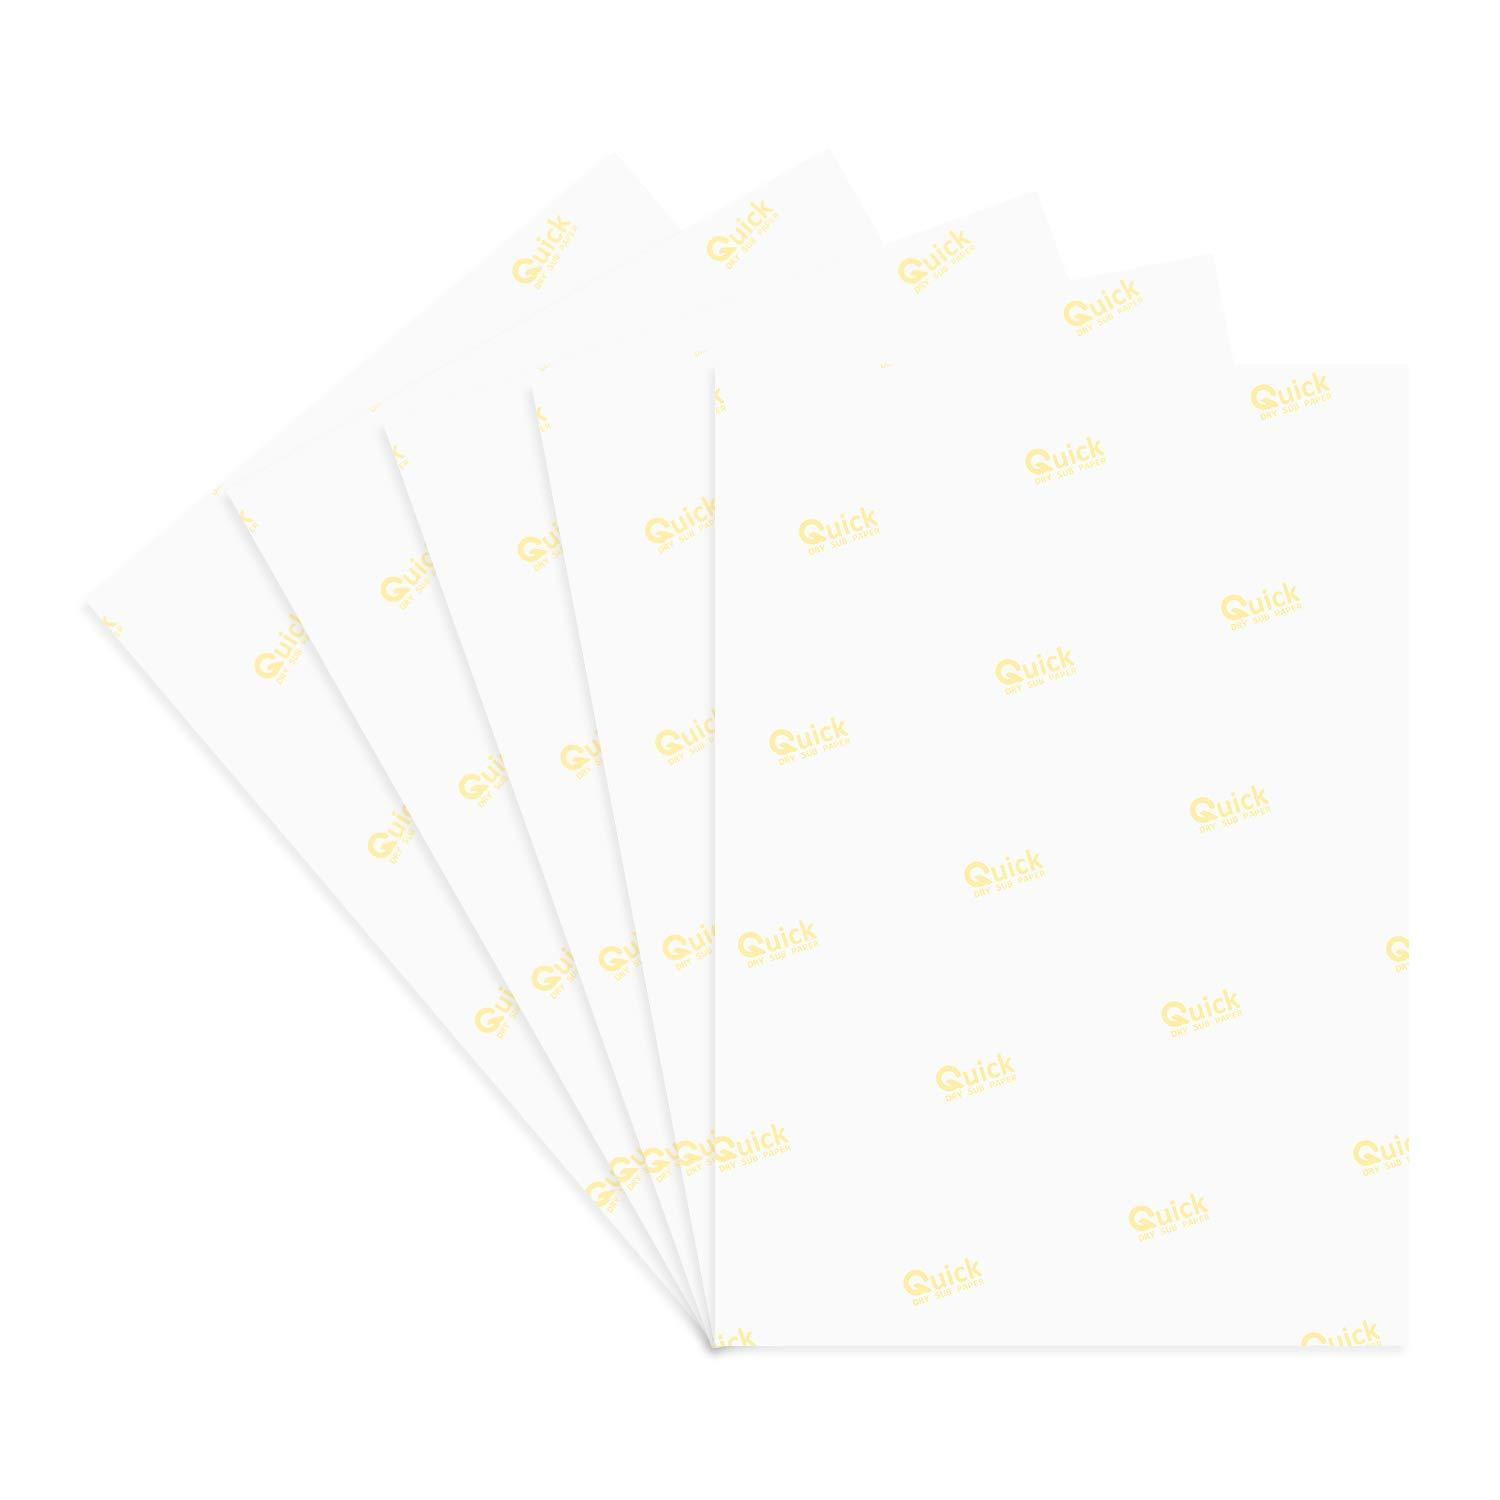 Hemudu Tale Sublimation Paper 110Sheets 13 x 19 Inches Heat Transfer for Inkjet Printer,126gsm